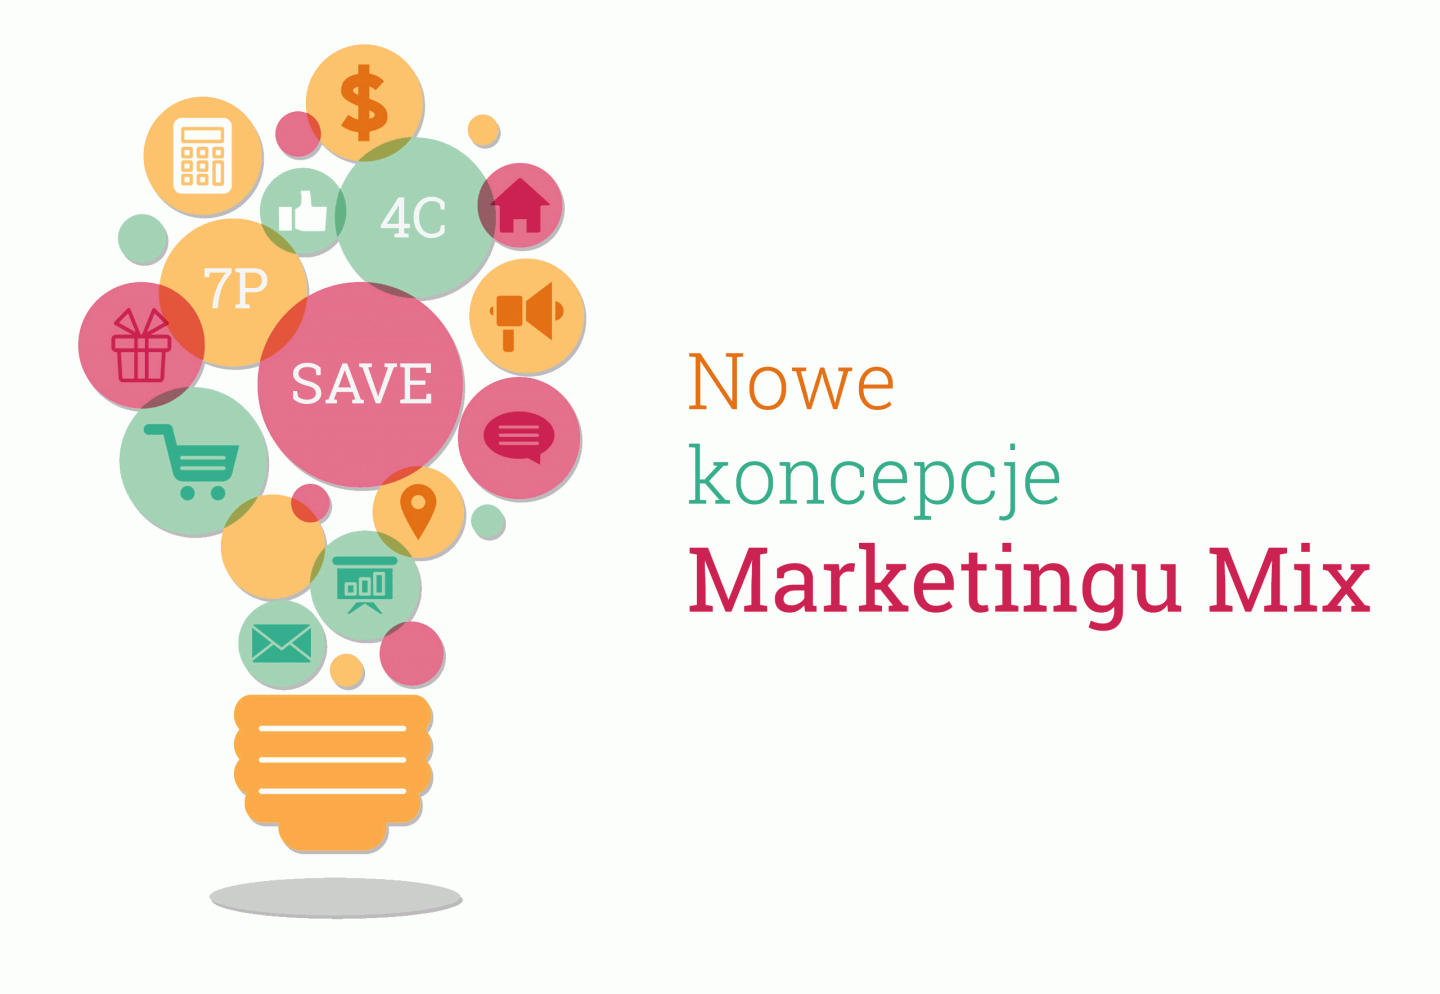 Nowy Marketing Mix - 4C, 7P i SAVE